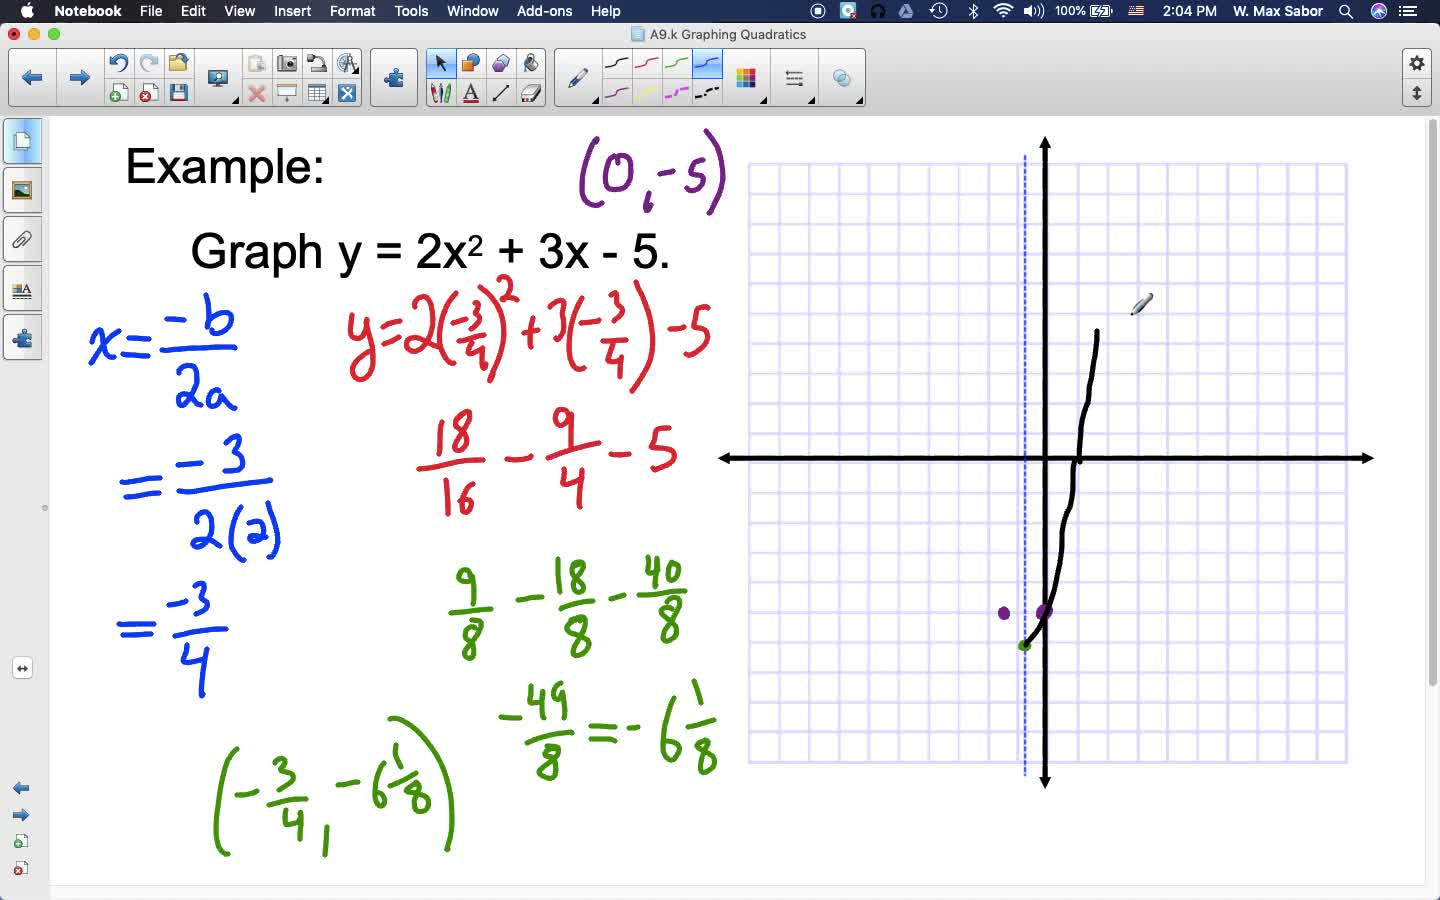 A9.k Graphing Quadratic Functions